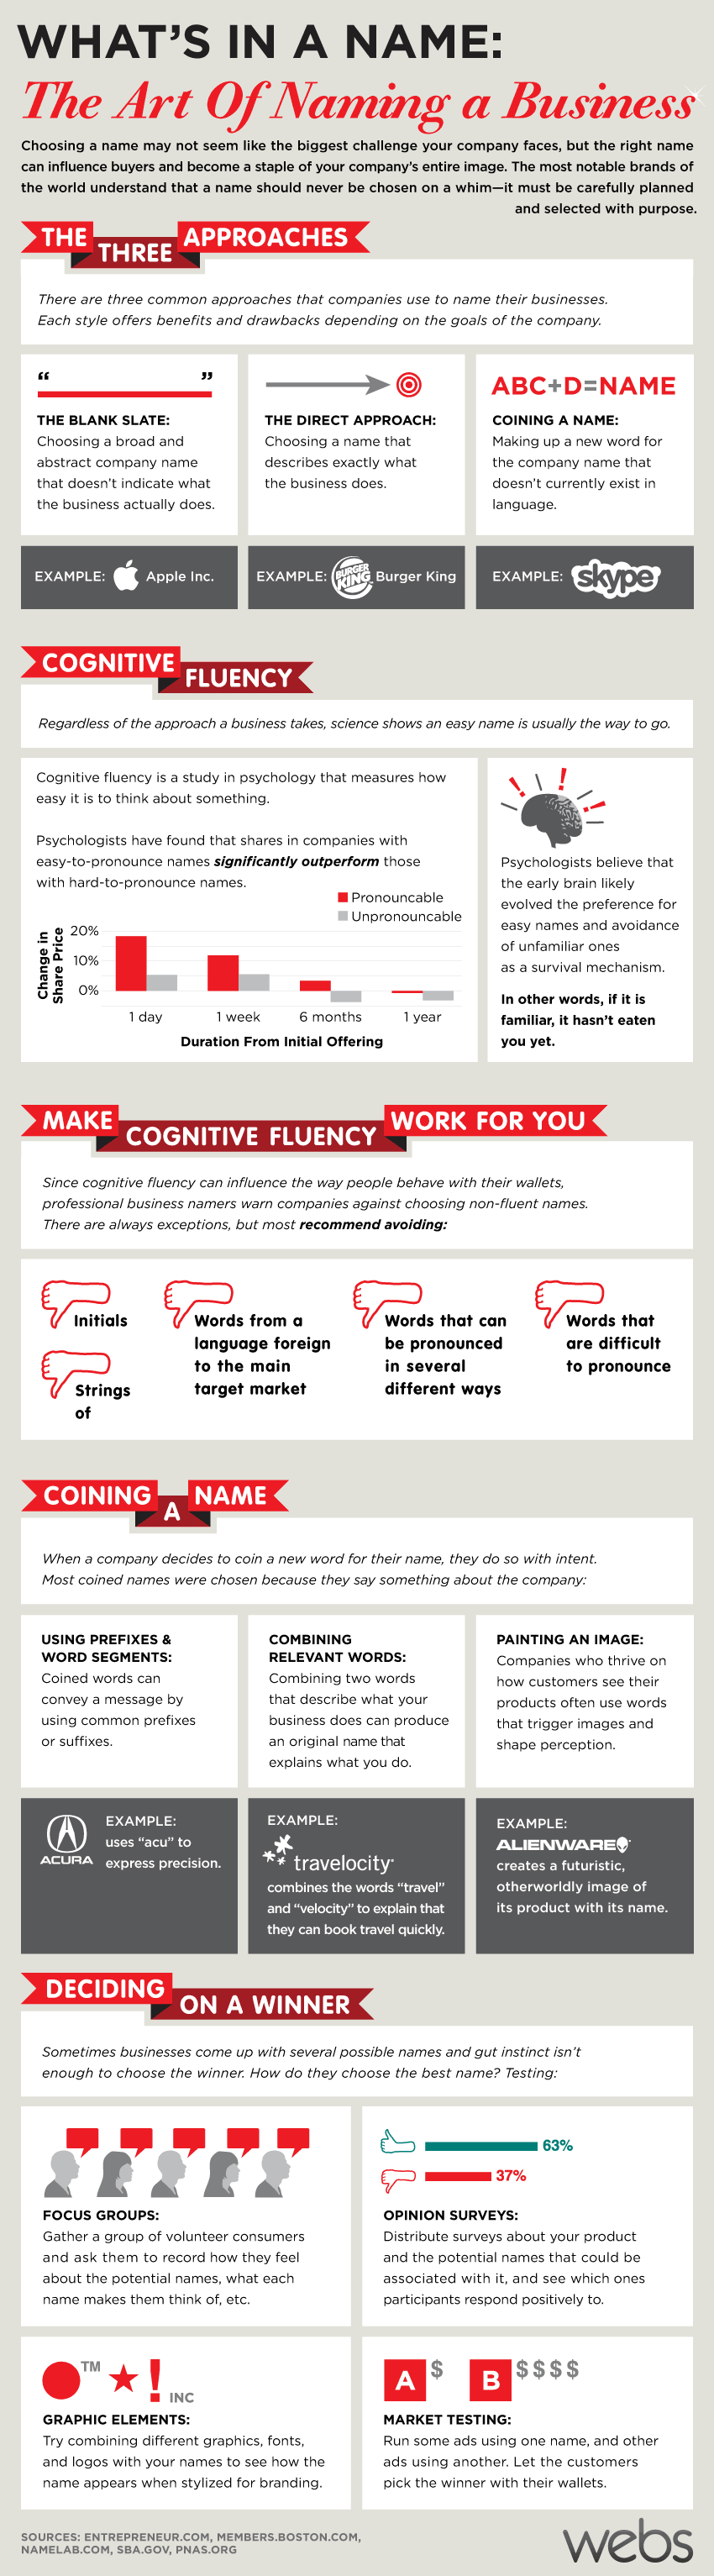 The Art of Naming a Business - infographic